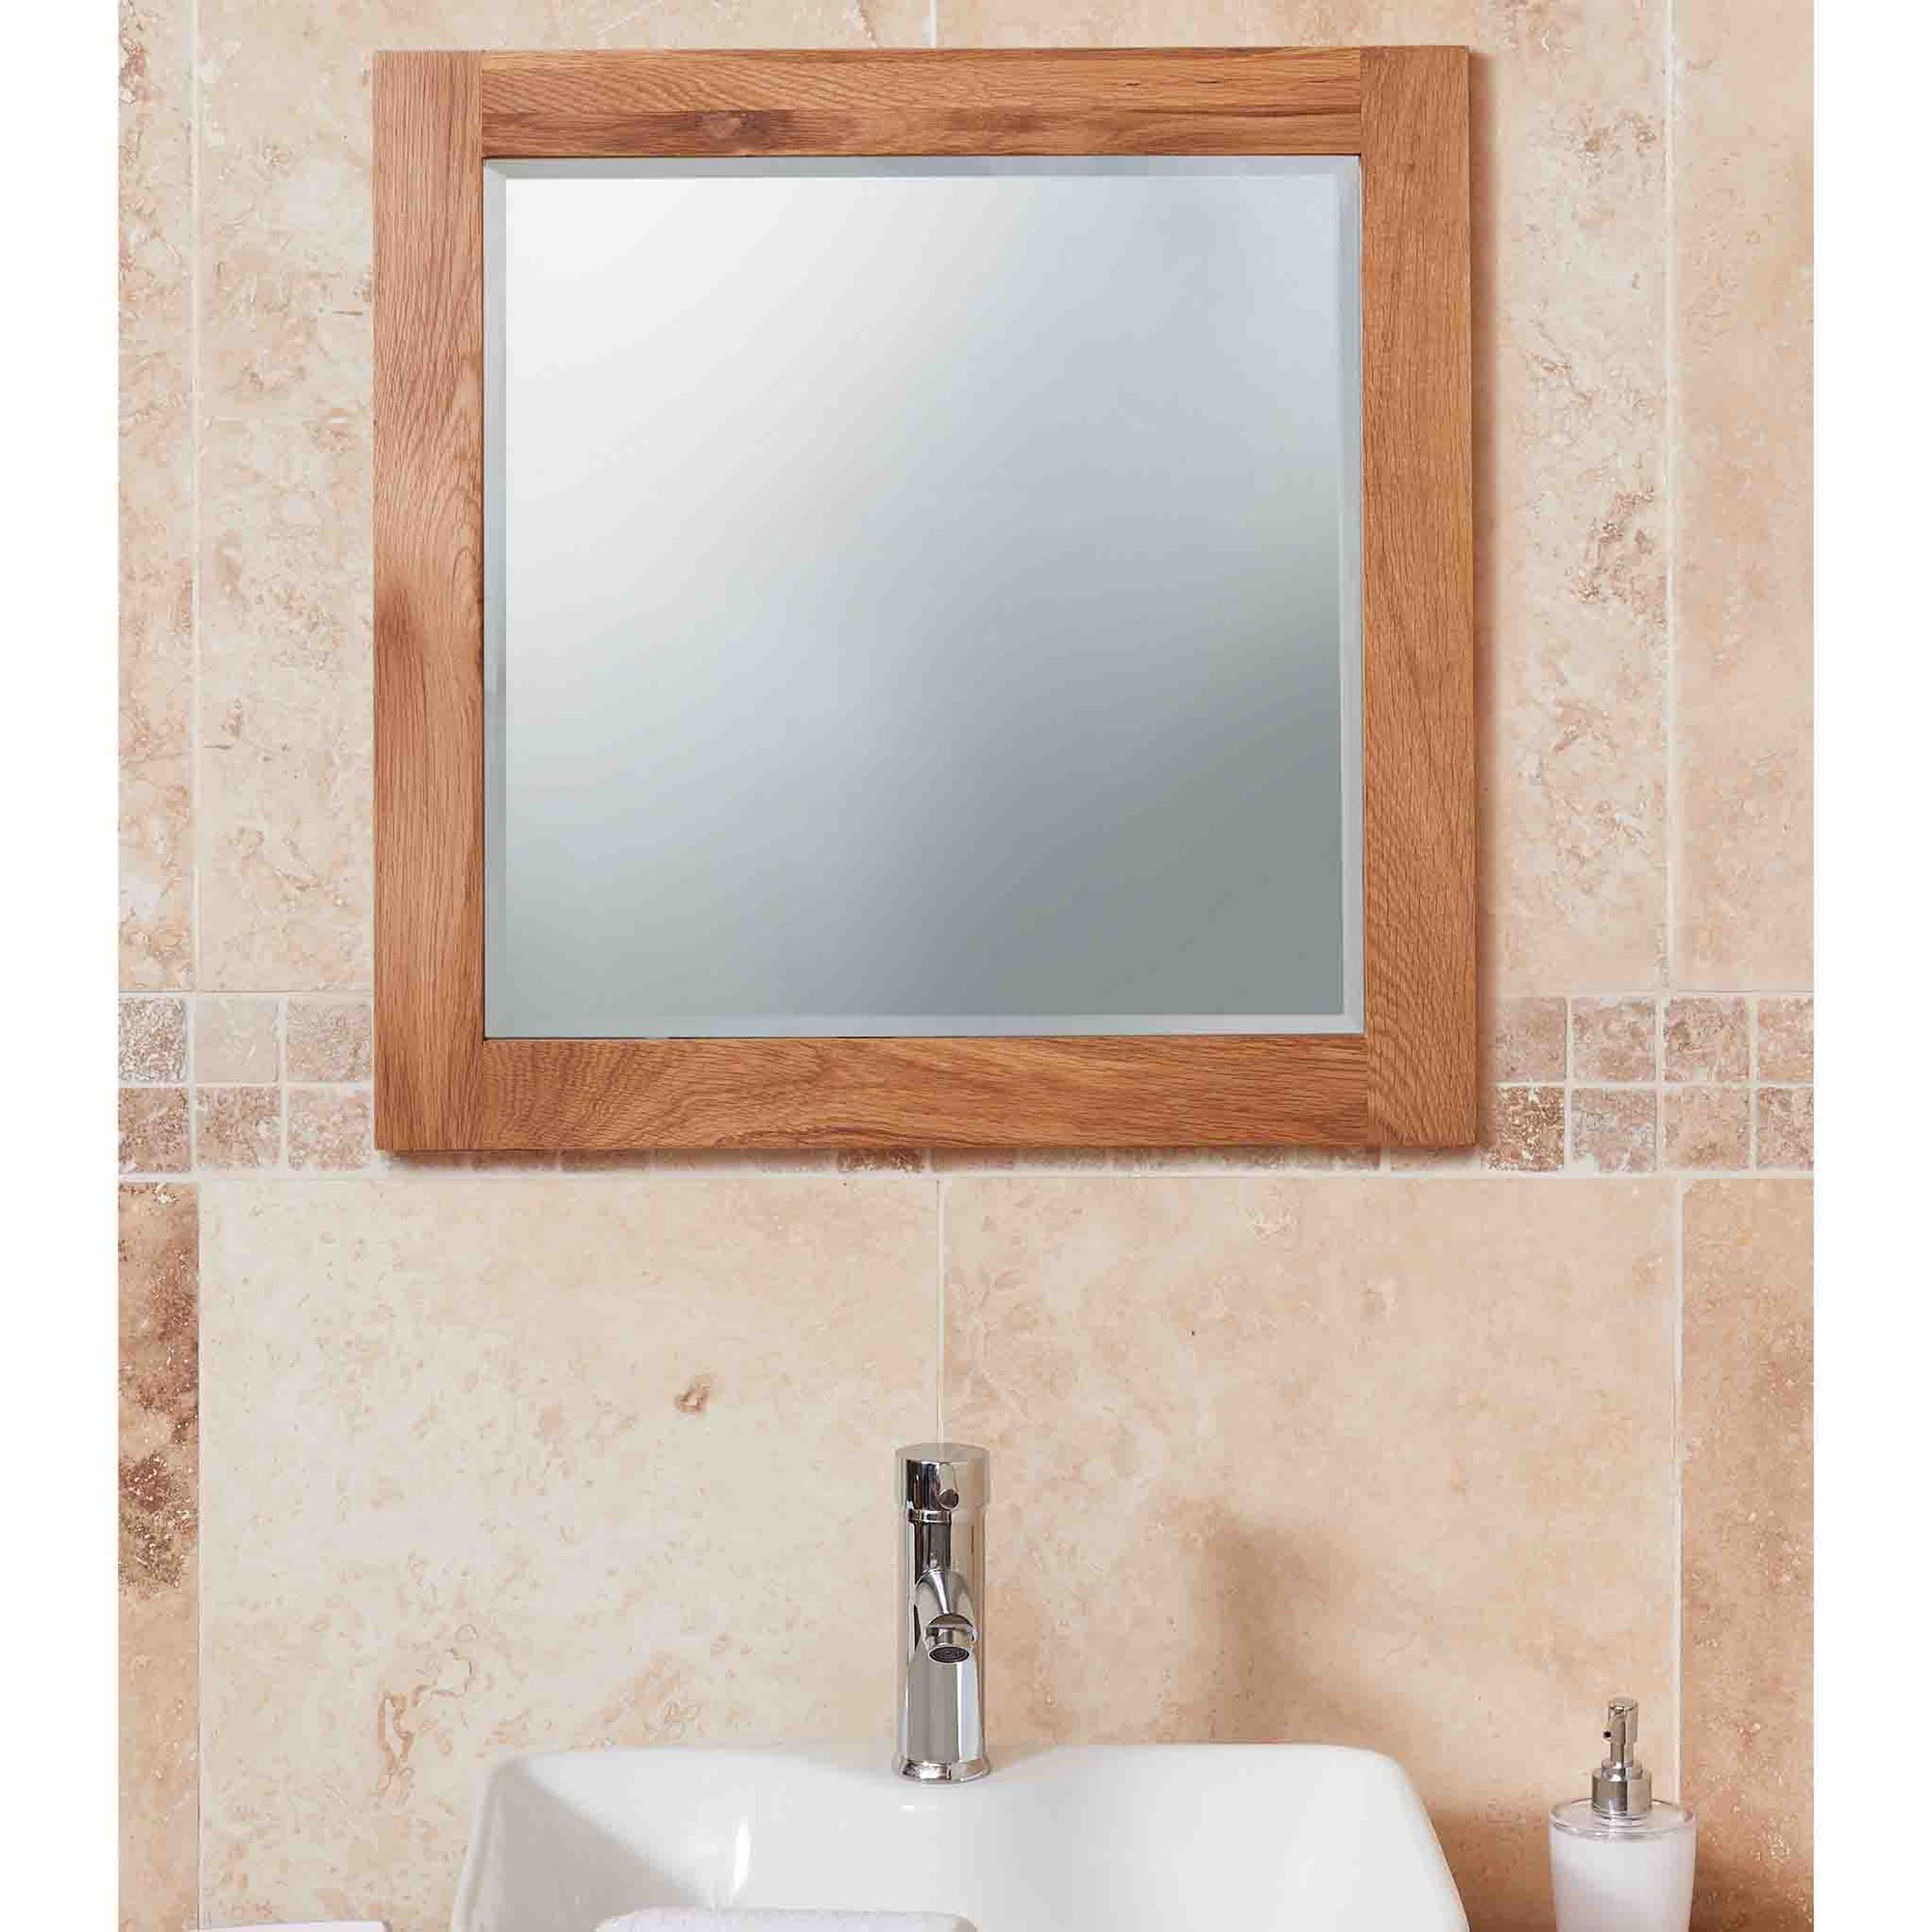 Mobel Oak Bathroom Large Wall Mounted Square Mirror 60 x 60cm